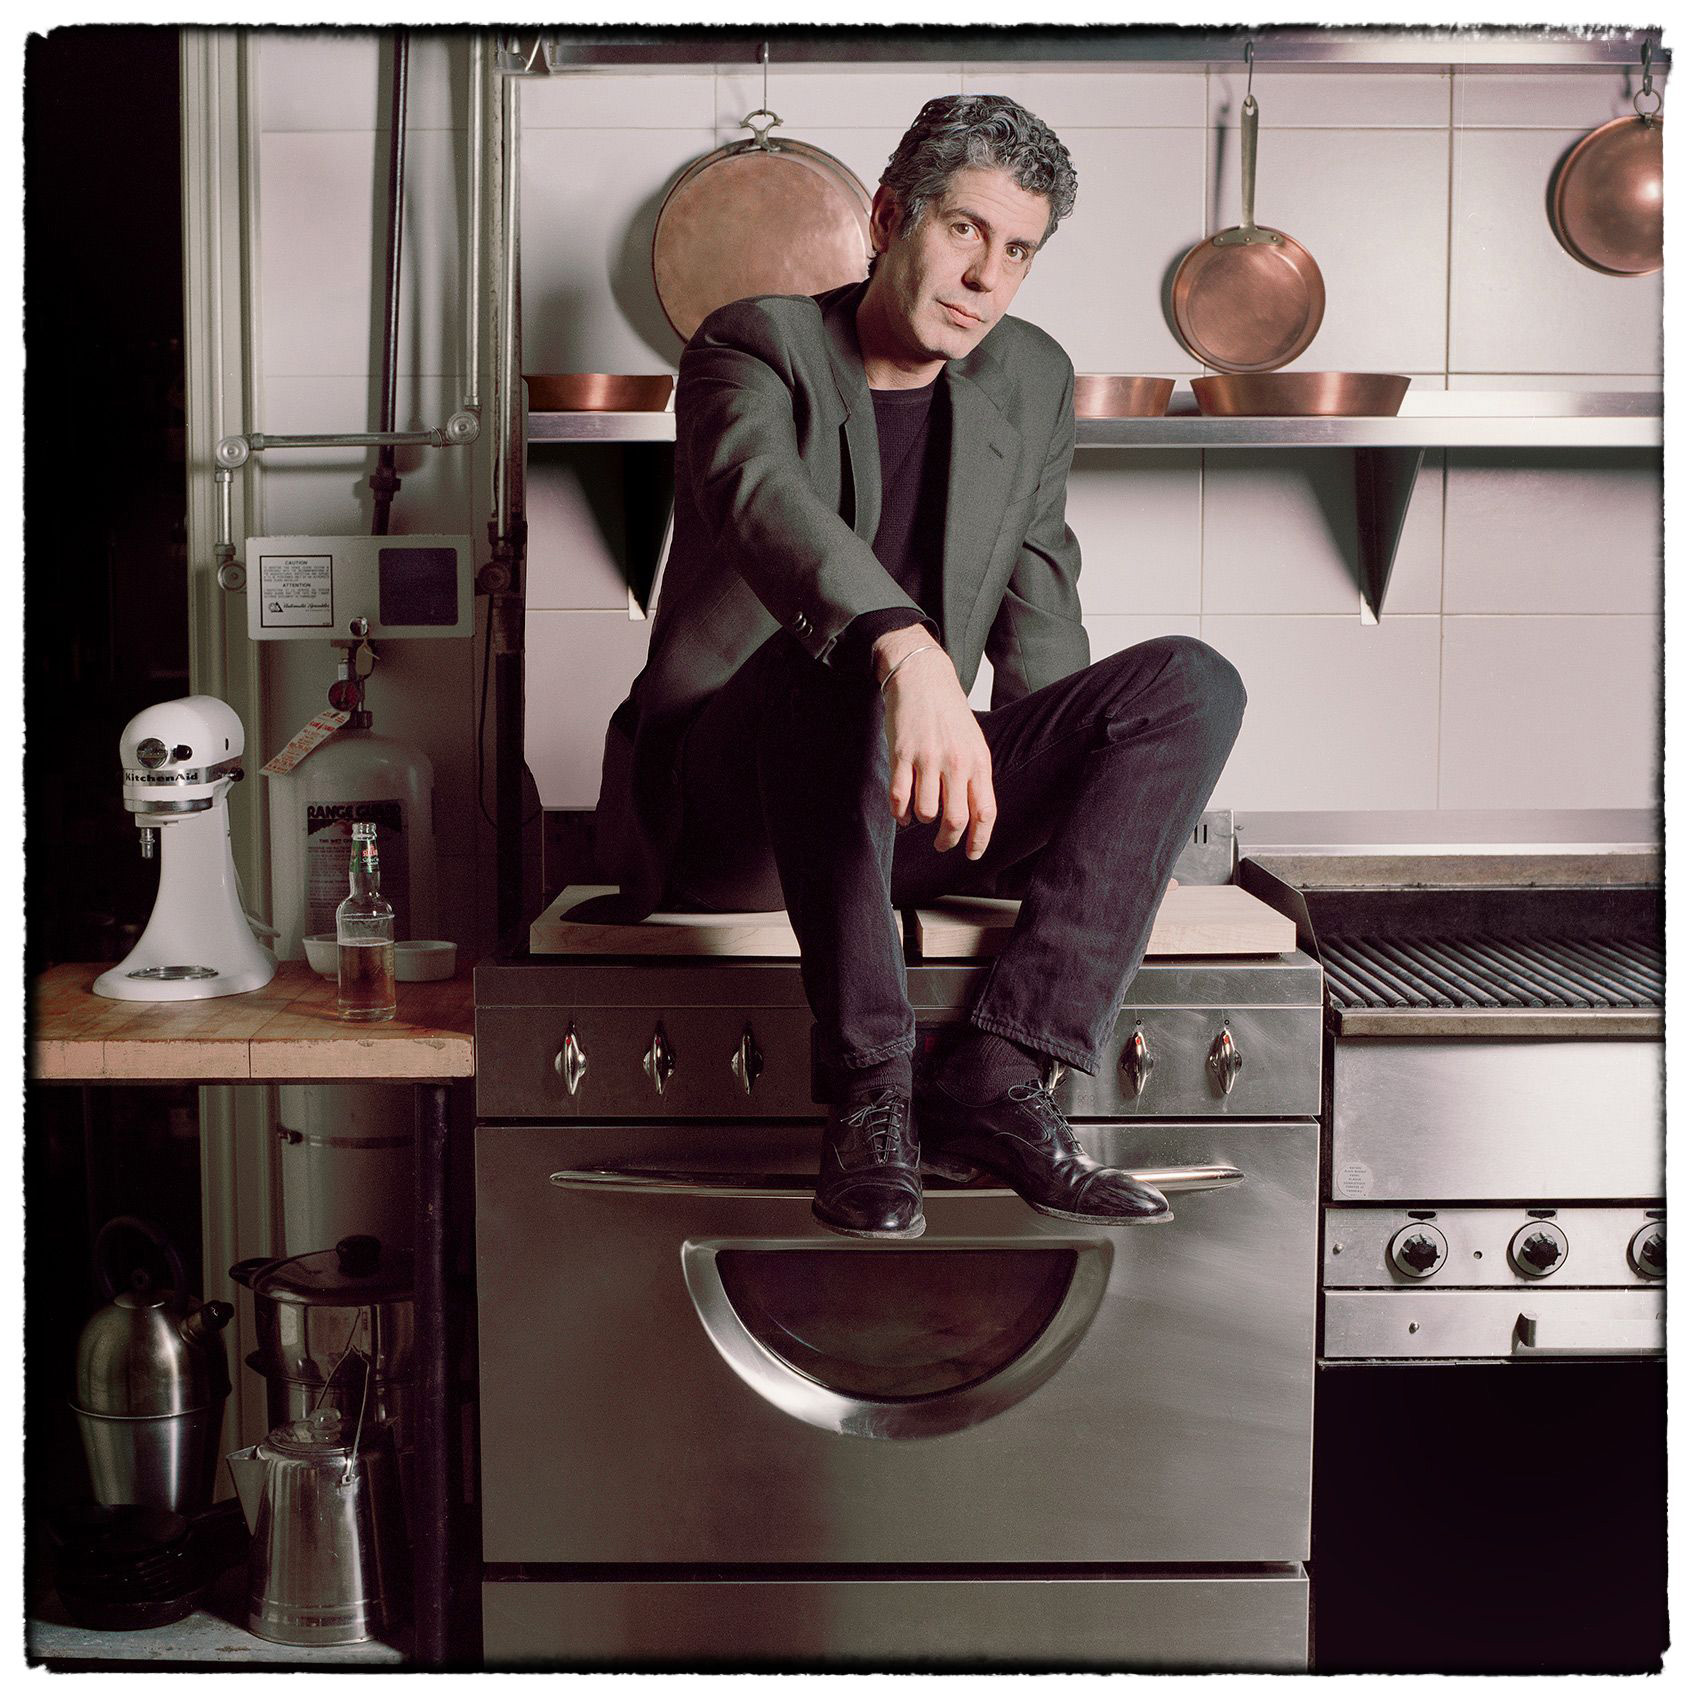 a-toronto-portrait-of-chef-anthony-bourdain-world-famous-chef